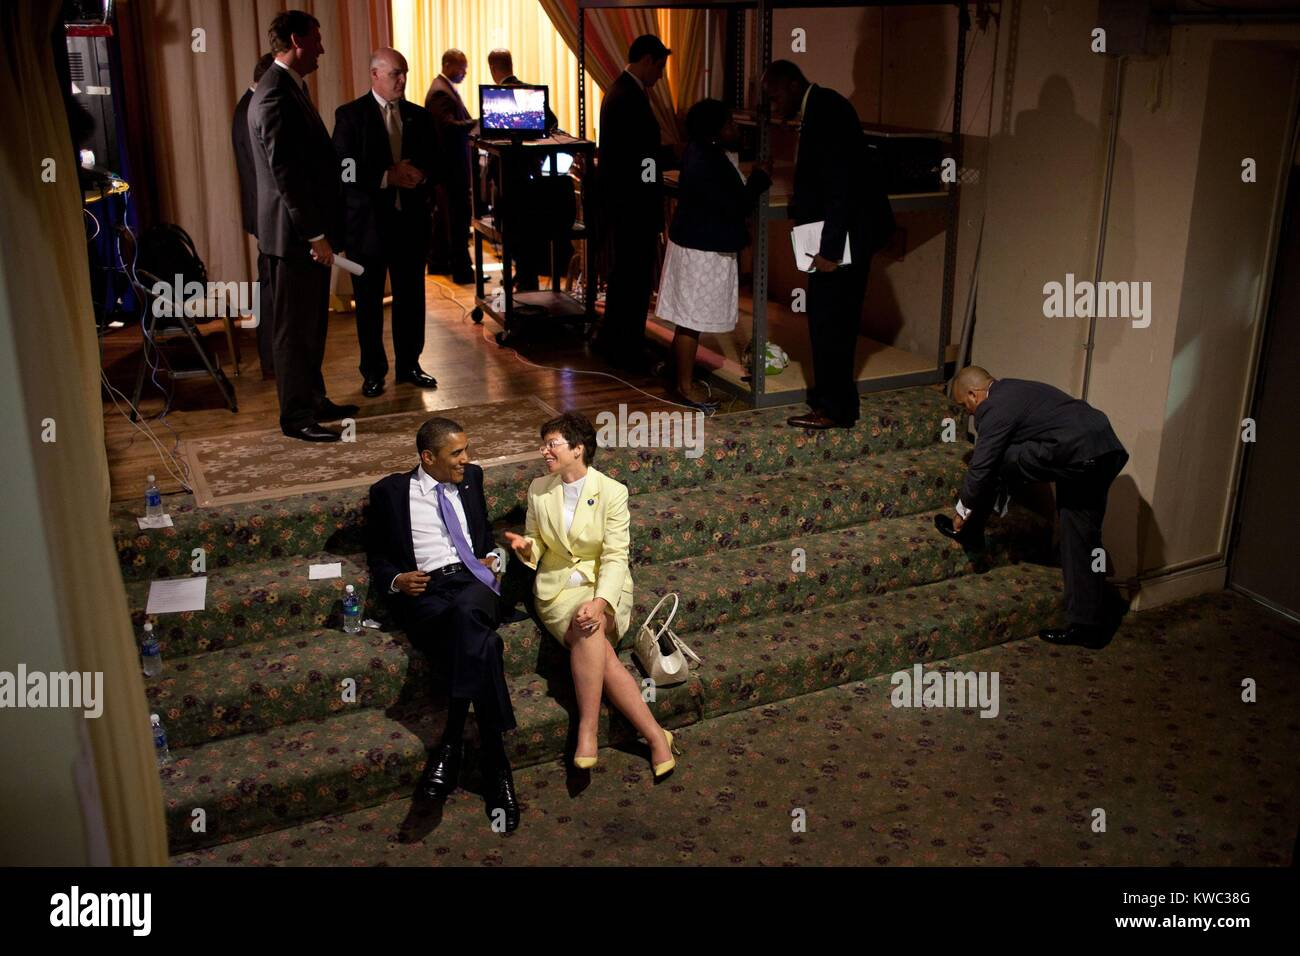 President Barack Obama relaxes with Senior Advisor Valerie Jarrett. They talked backstage before a reception in - Stock Image